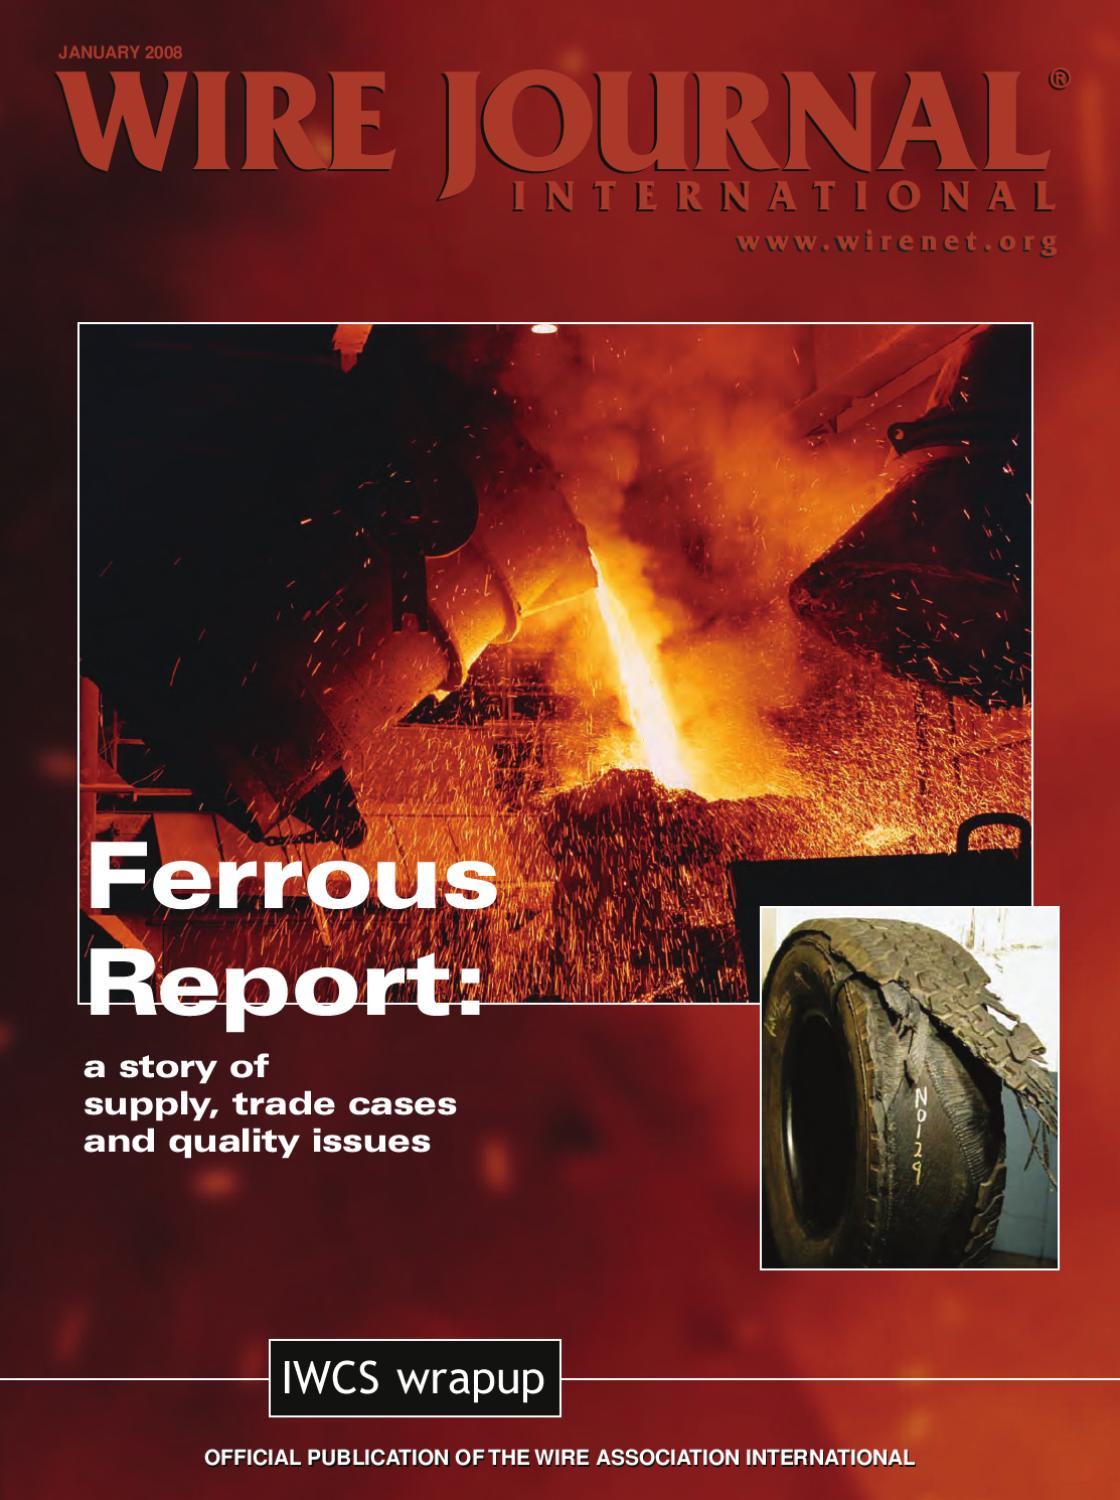 Ferrous Report A Story Of Supply Trade Cases And Quality Issues By Surface Mounted Box Wiring 1407 Chase Wire Journal International Inc Issuu